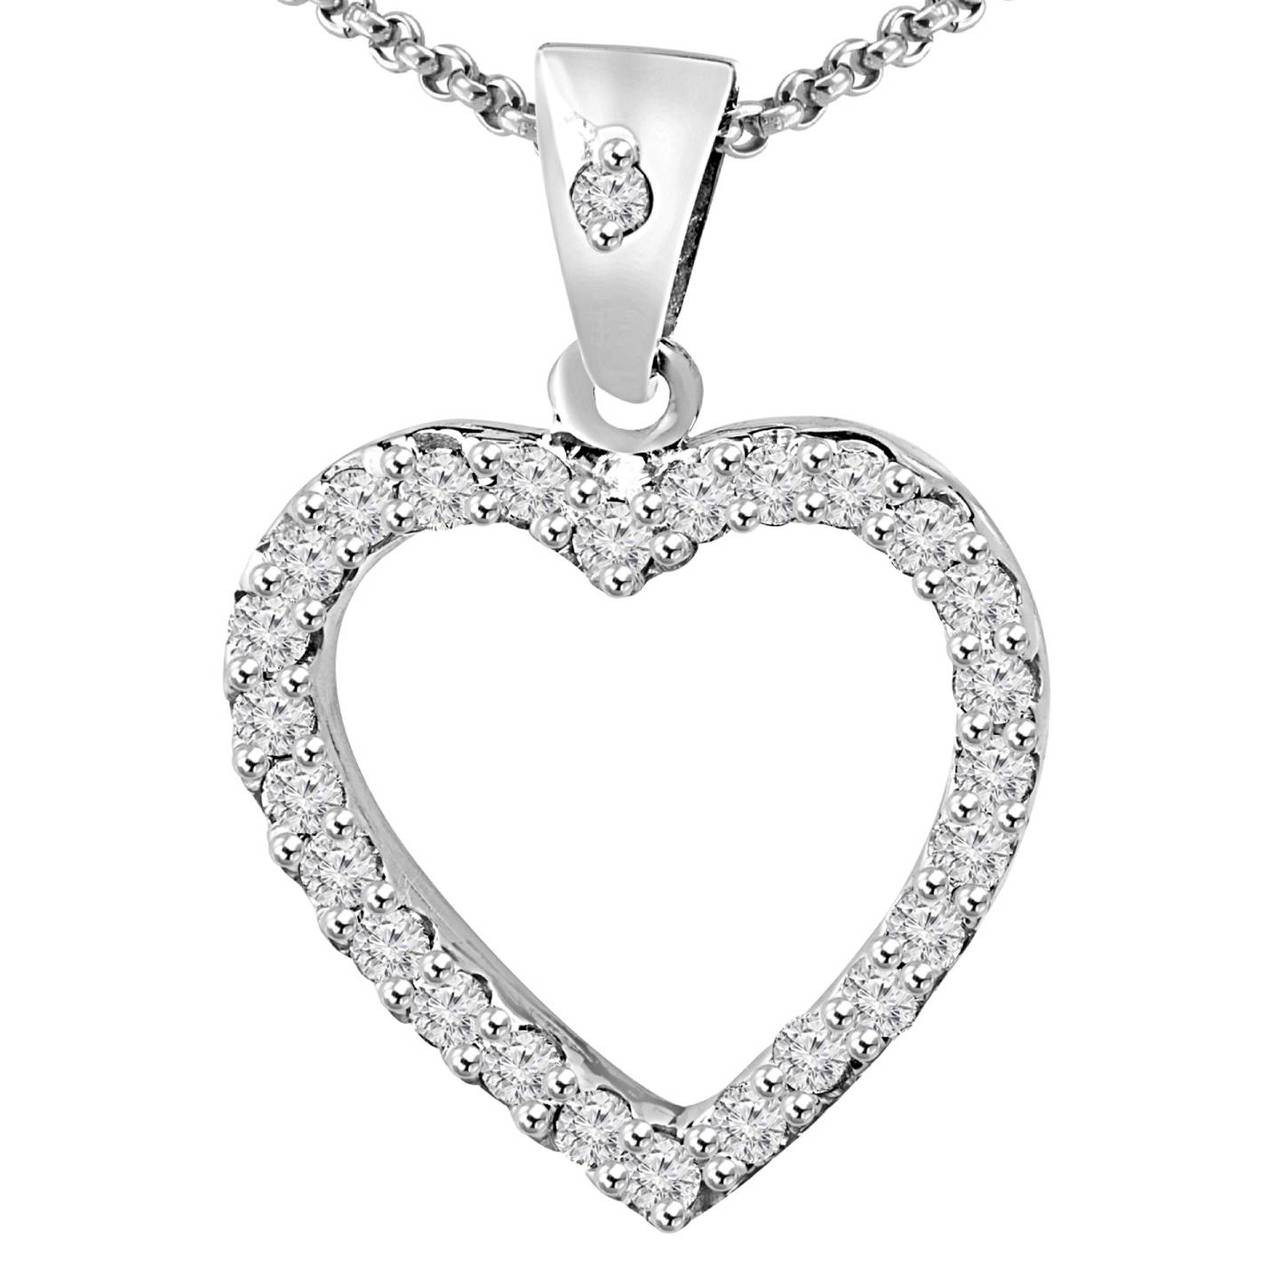 Heart shaped necklace bijoux majesty round cut diamond multi stone shared prong heart shape pendant necklace with chain in white gold md p heart r w aloadofball Image collections